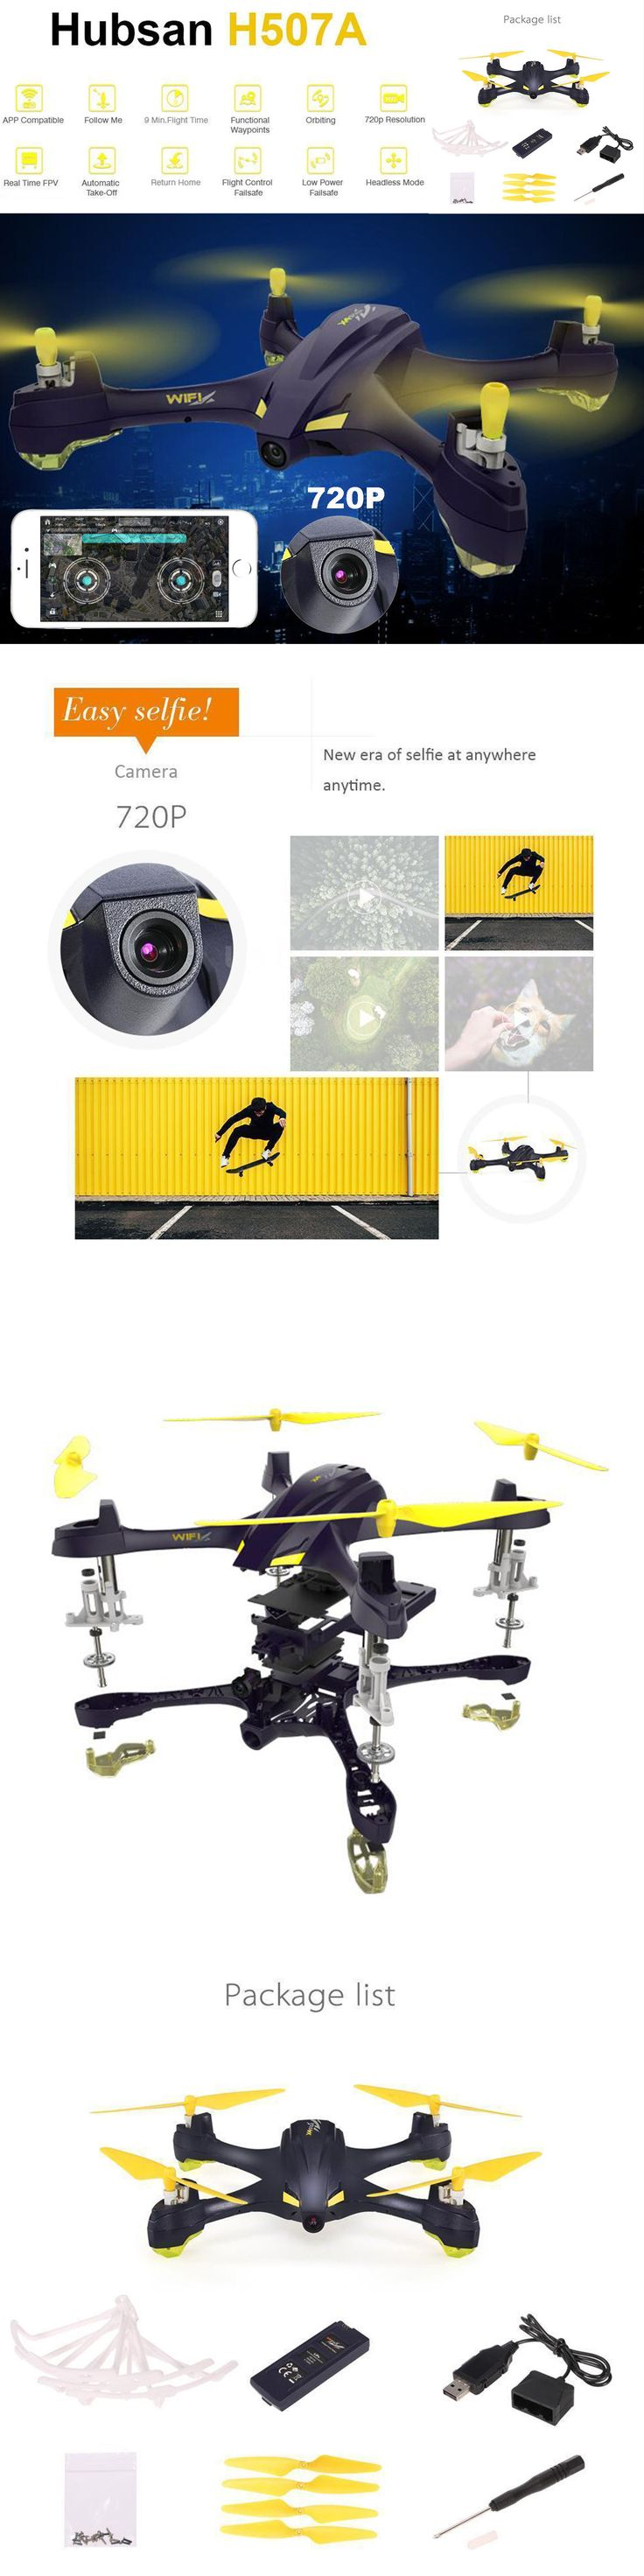 Other RC Model Vehicles and Kits 182186: Hubsan H507a X4 Star Pro 720P Camera Wifi Fpv Rc Quadcopter Follow Me Drone Gps -> BUY IT NOW ONLY: $119.89 on eBay!